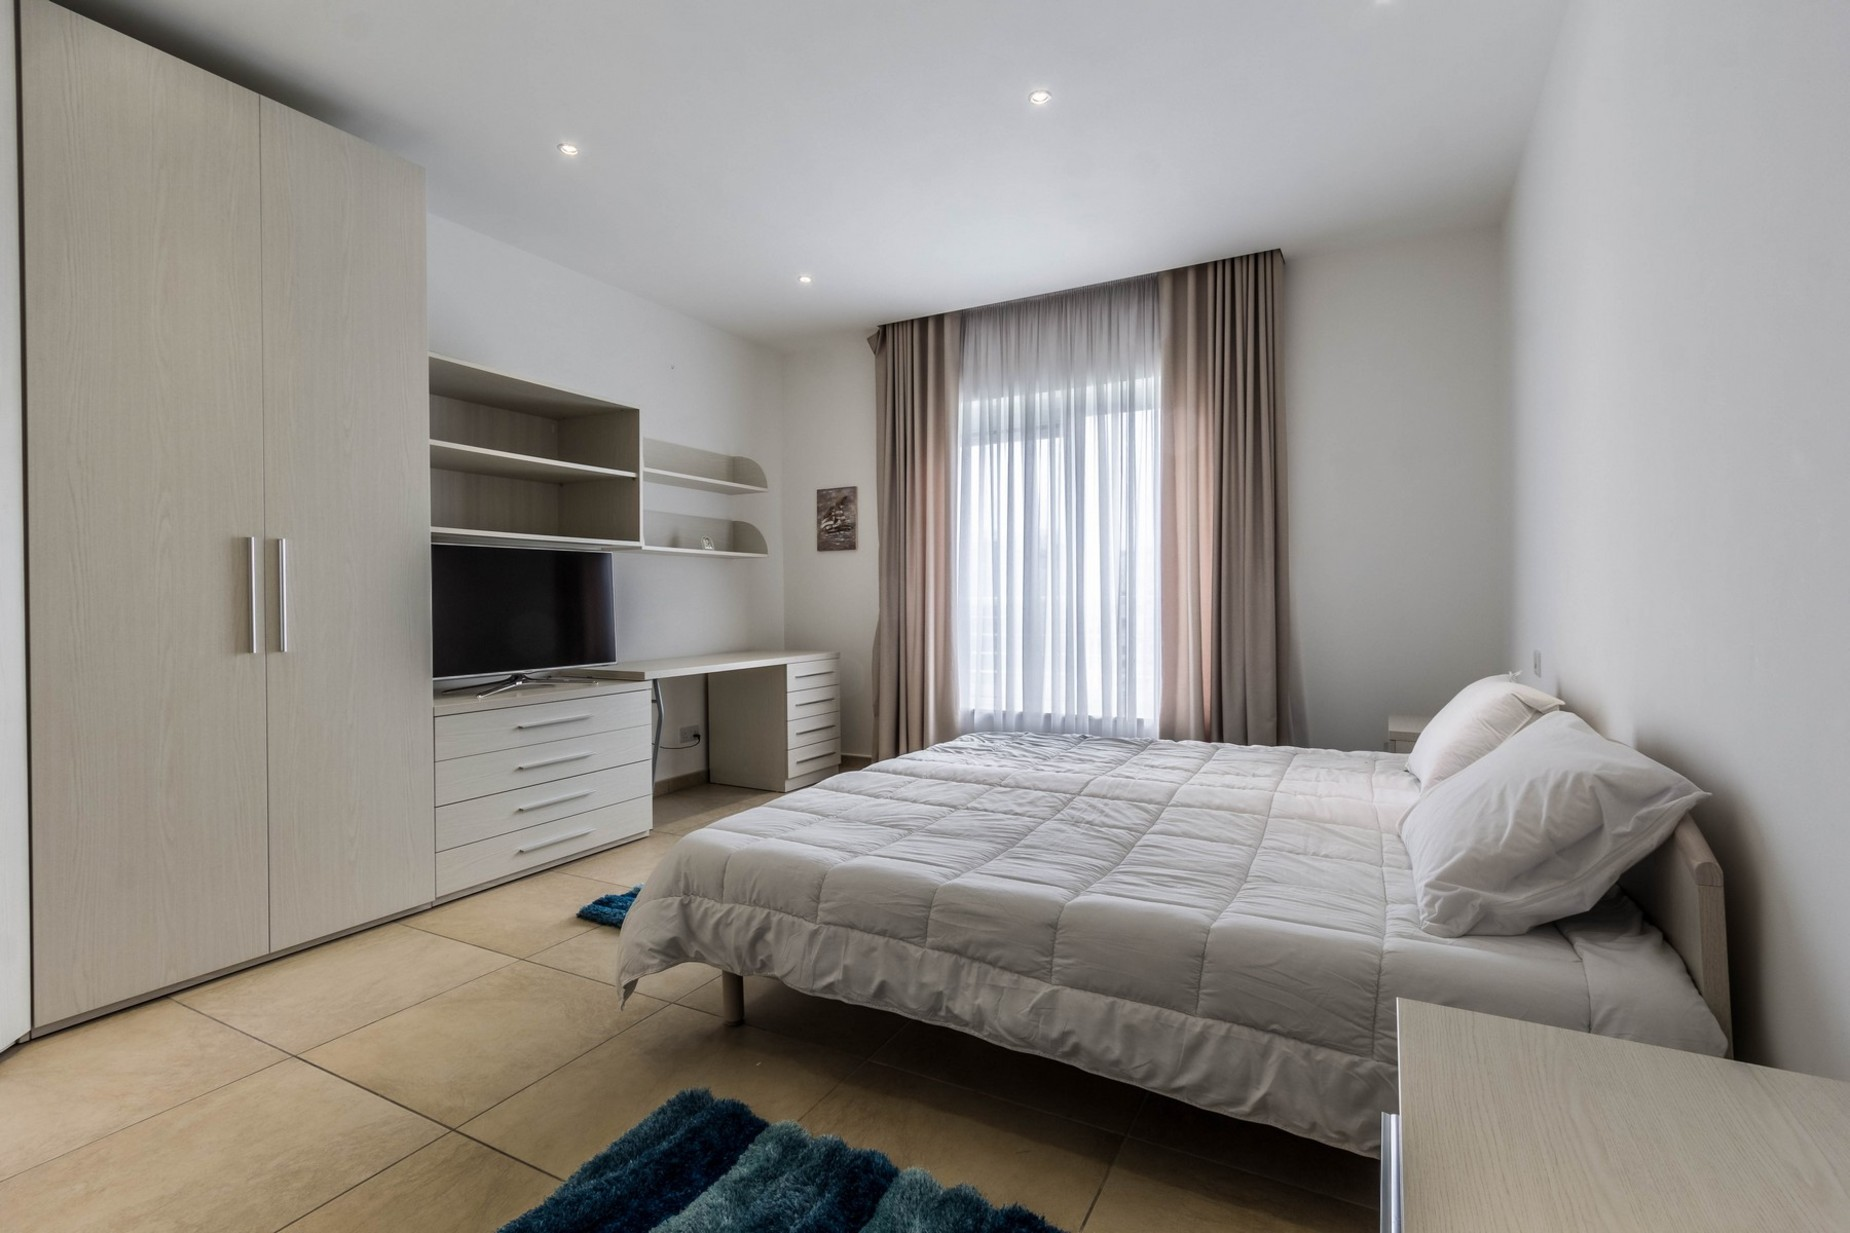 3 bed Apartment For Sale in Sliema, Sliema - thumb 11